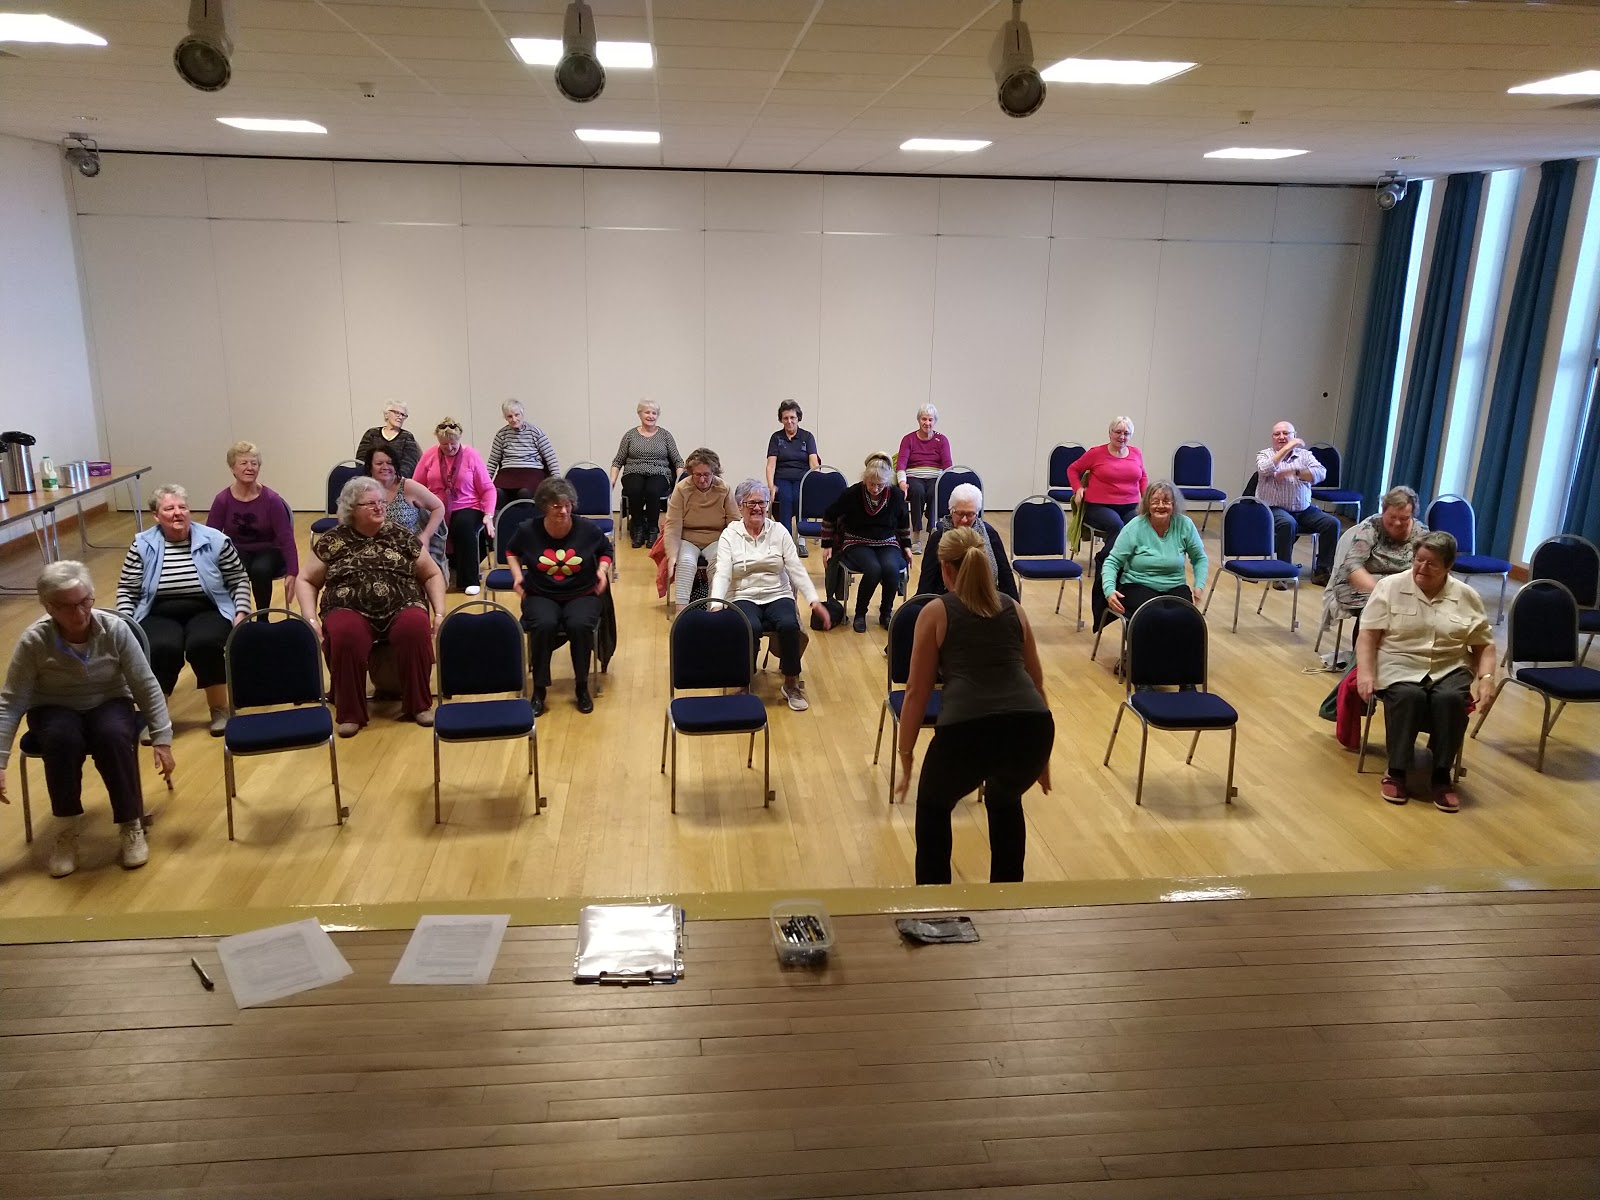 Seated Fitness Classes are Dementia Friendly